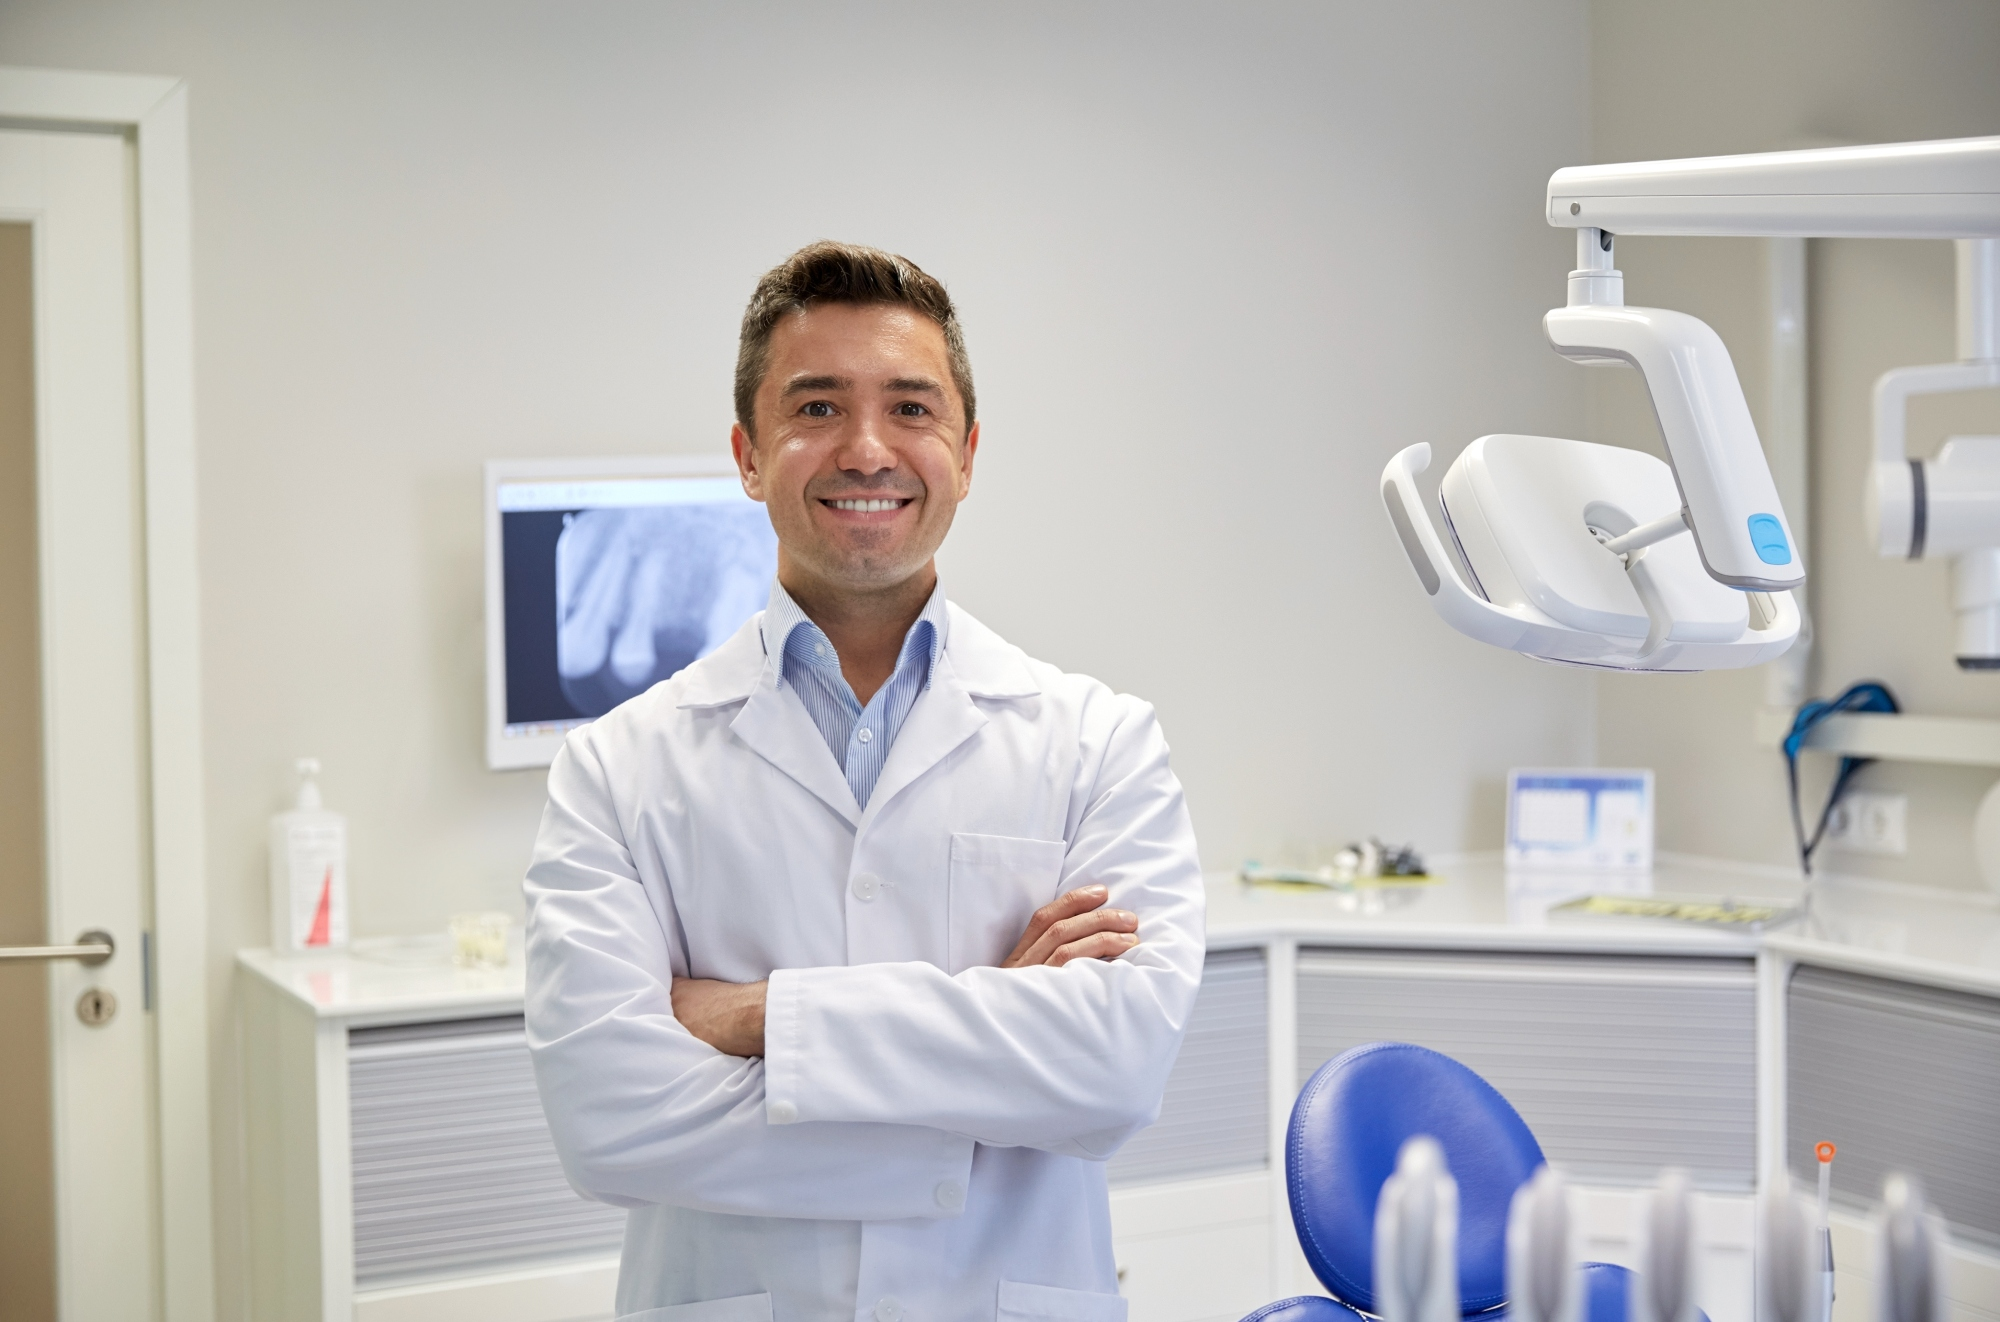 When should you buy your own dental practice